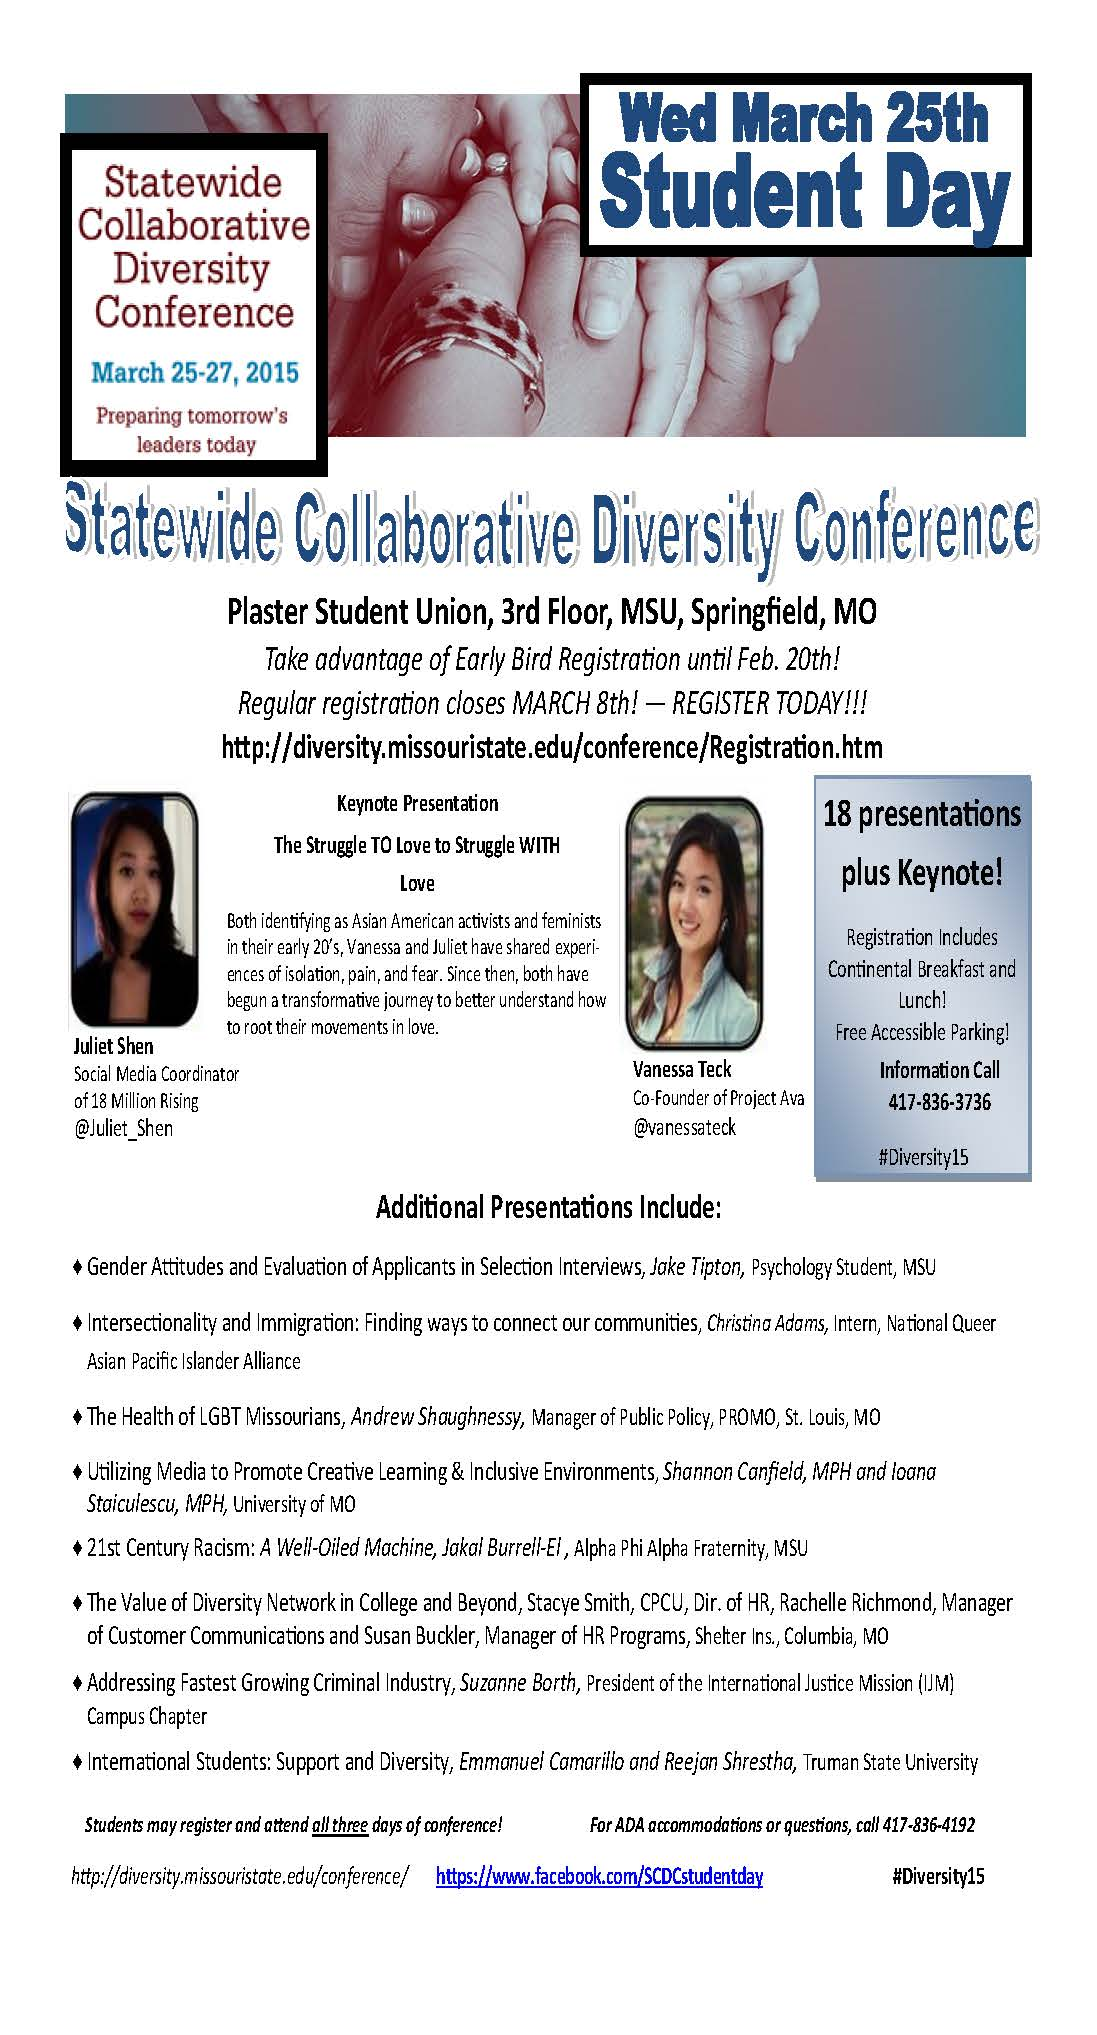 Statewide Collaborative Diversity Conference: Student day